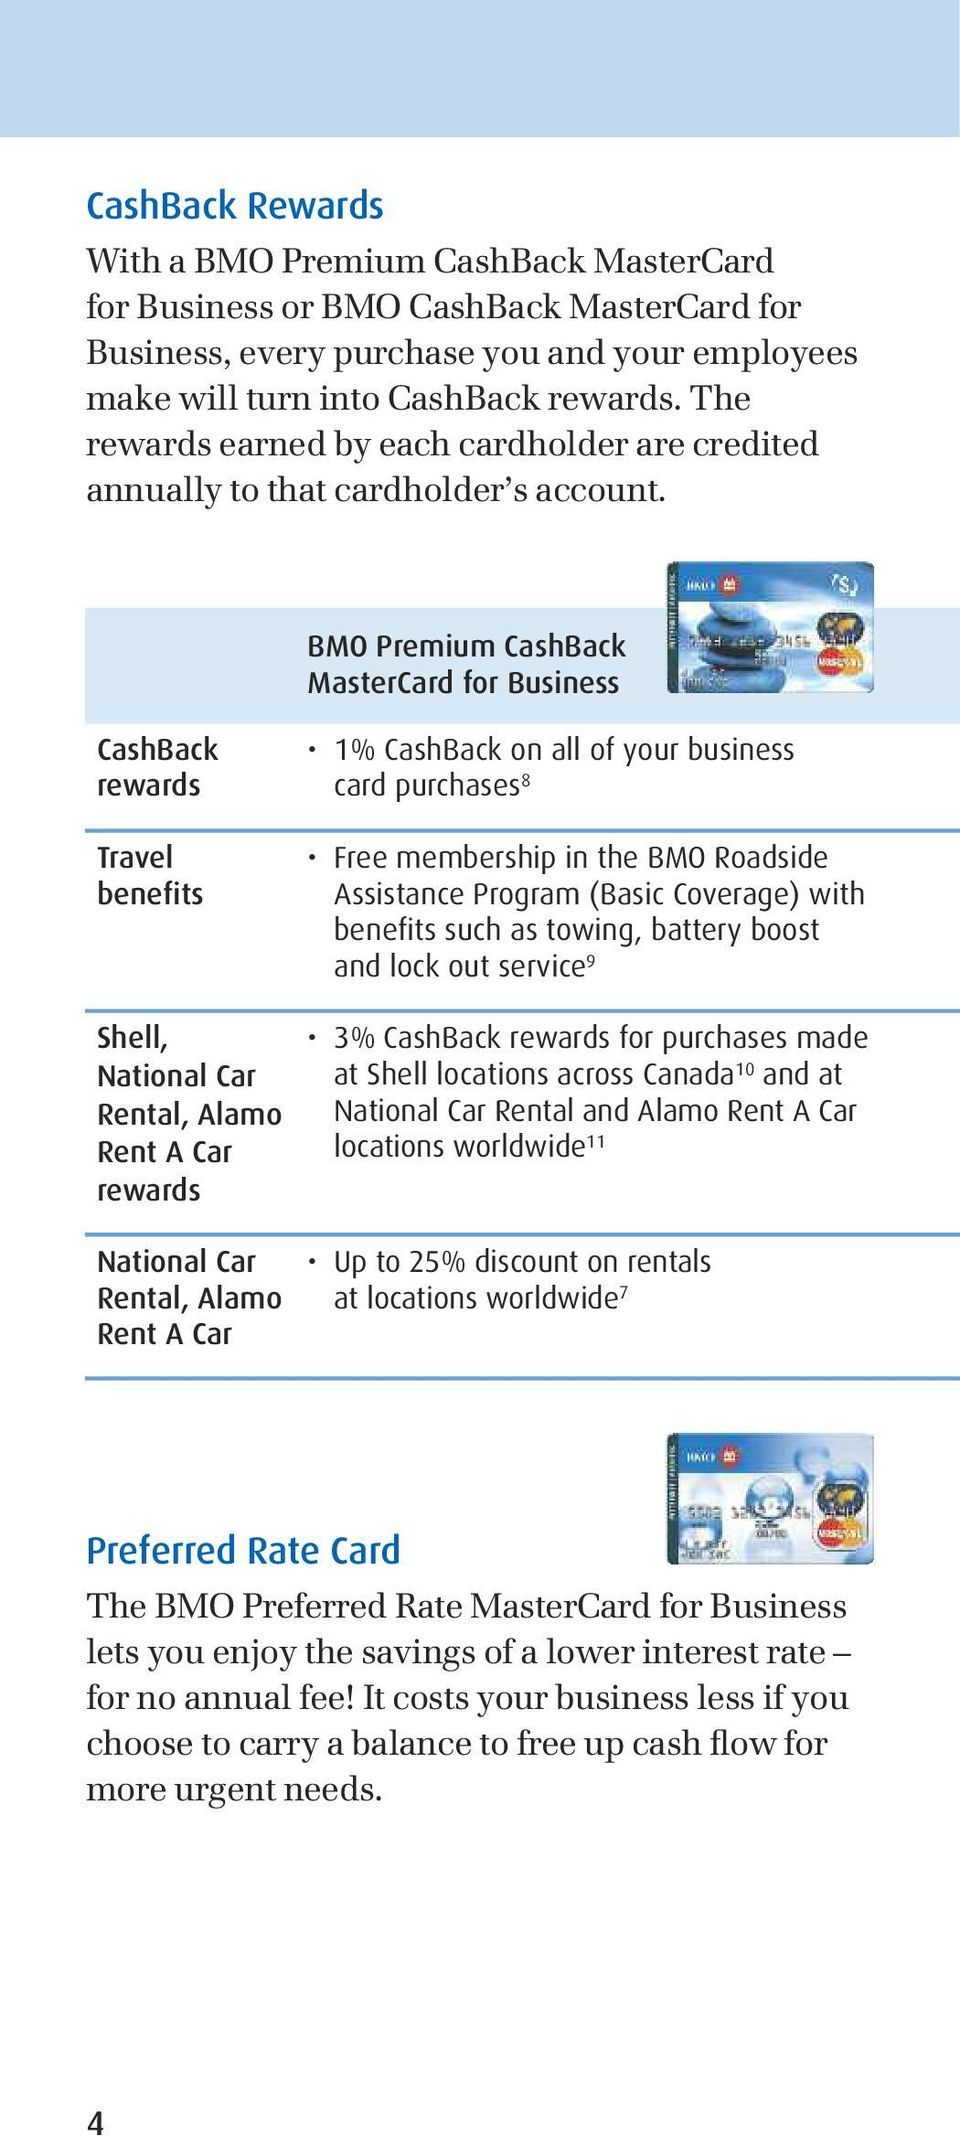 BMO Premium CashBack MasterCard for Business CashBack rewards Travel benefits Shell, National Car Rental, Alamo Rent A Car rewards National Car Rental, Alamo Rent A Car 1% CashBack on all of your